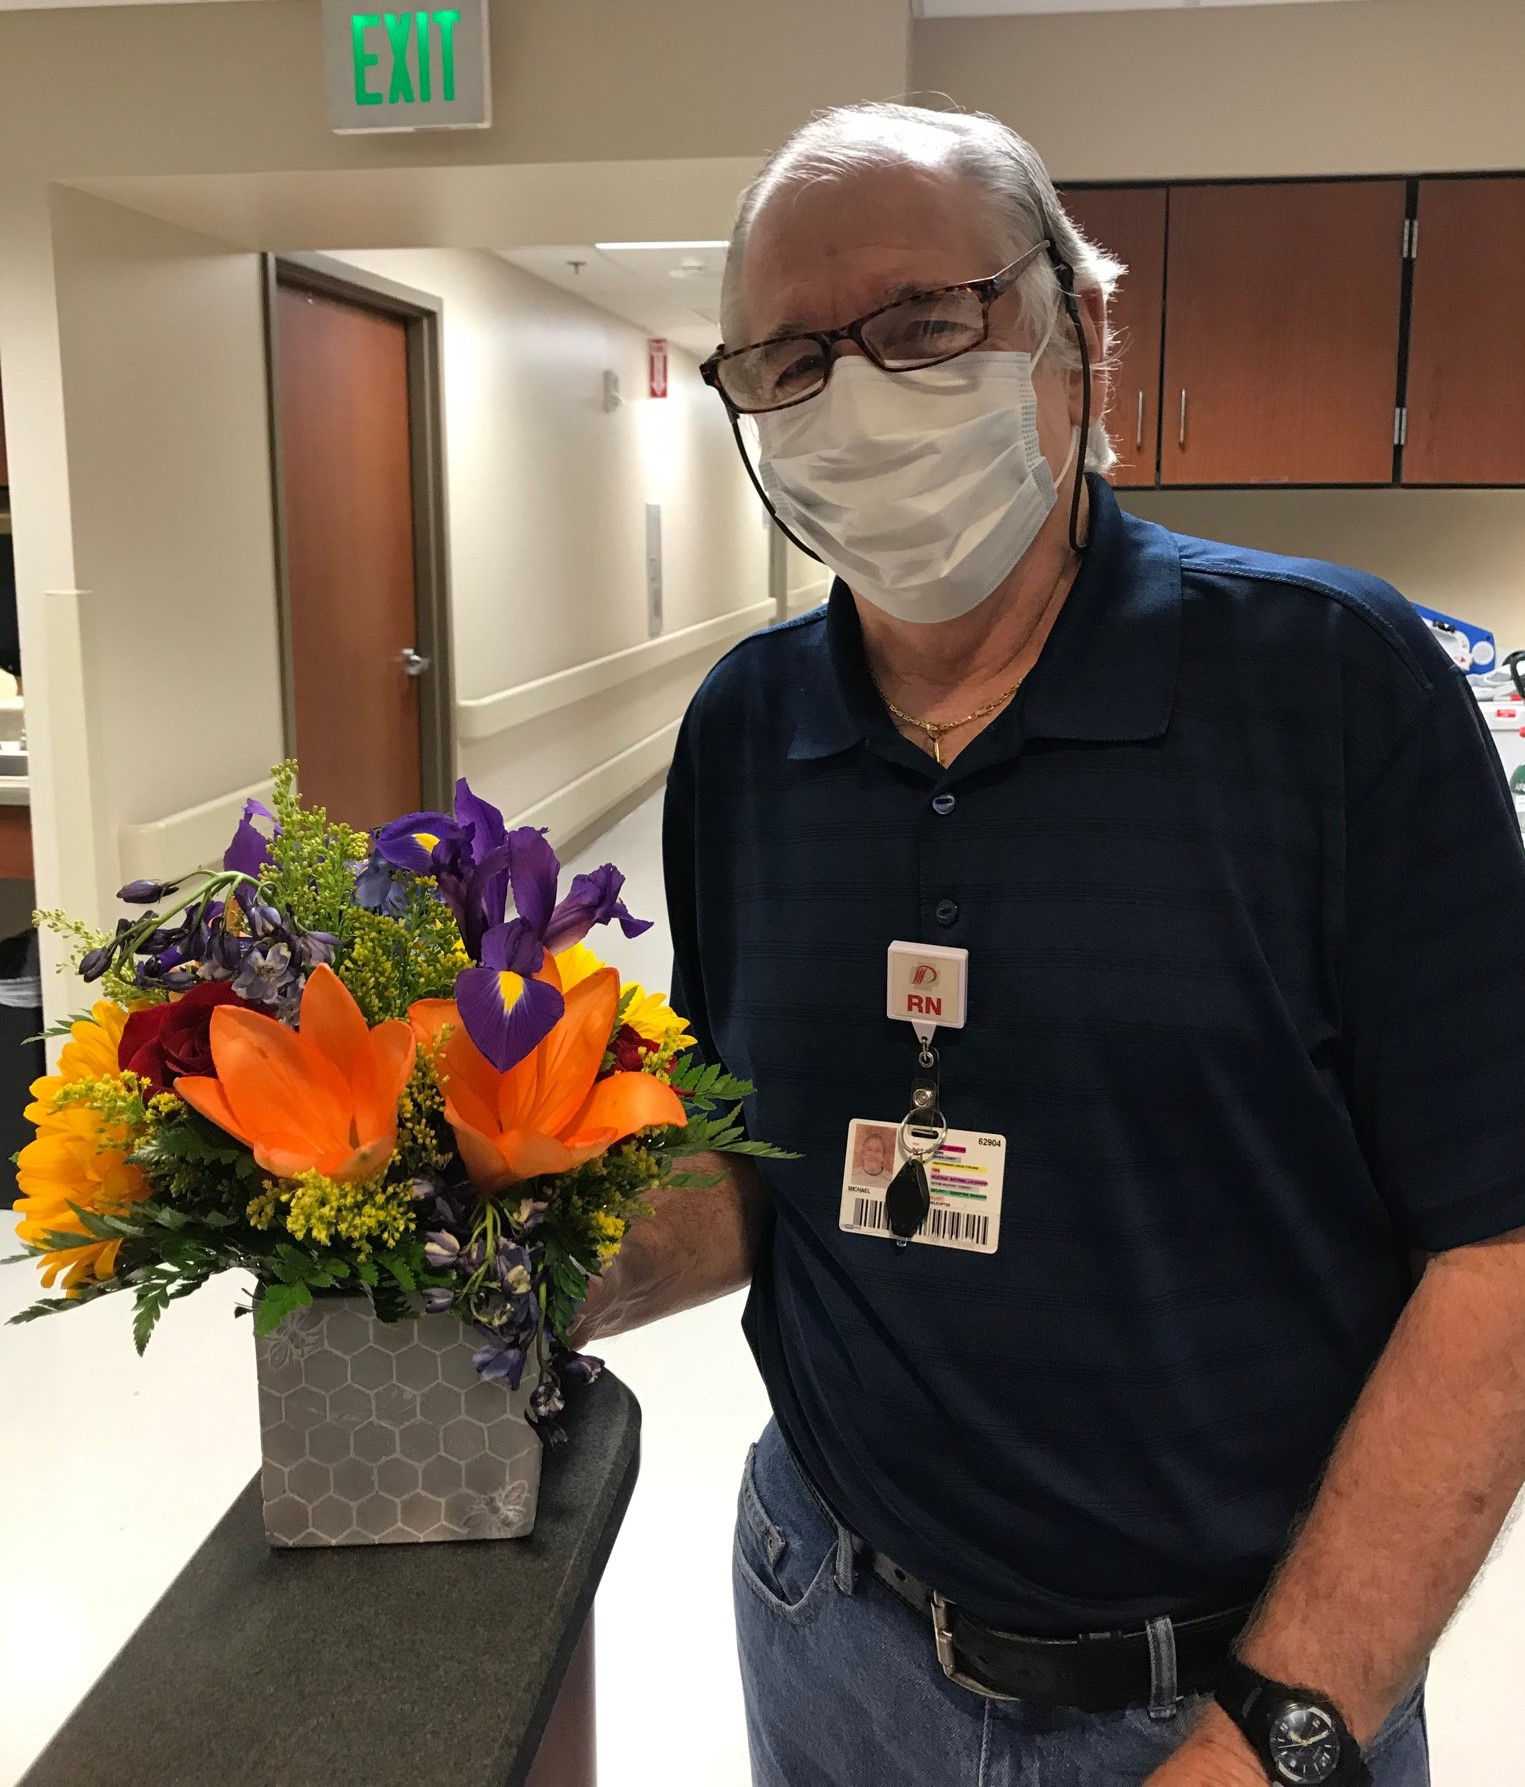 Mike Lauderdale with flowers and mask.